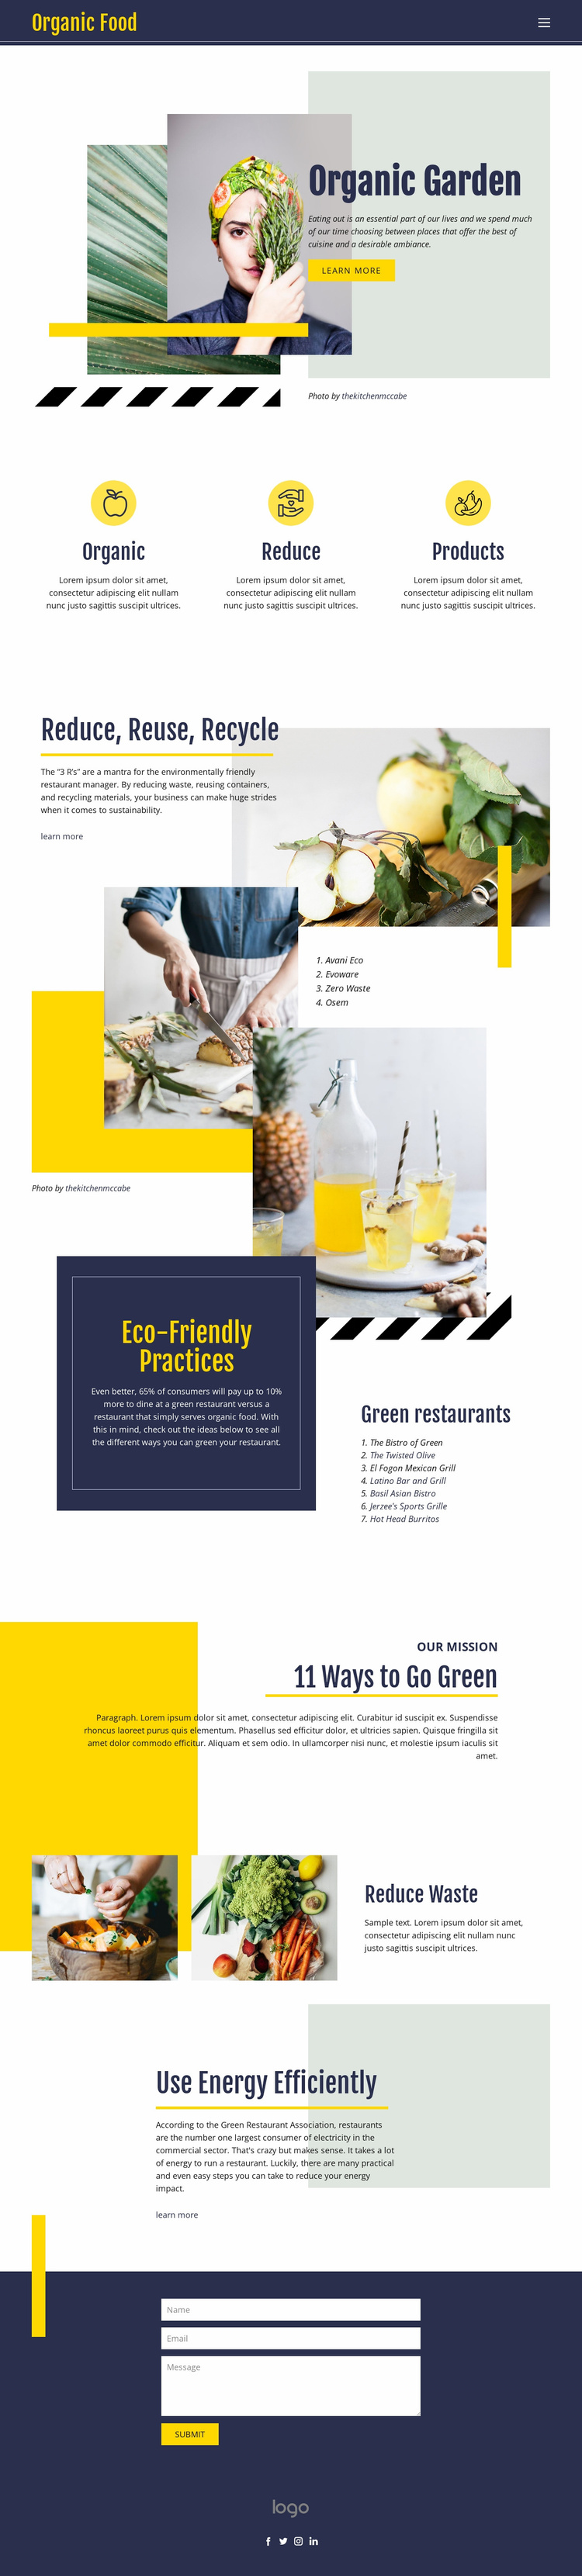 Organic natural food Website Template Regarding Which One Is Better Free Templates Versus Premium Templates